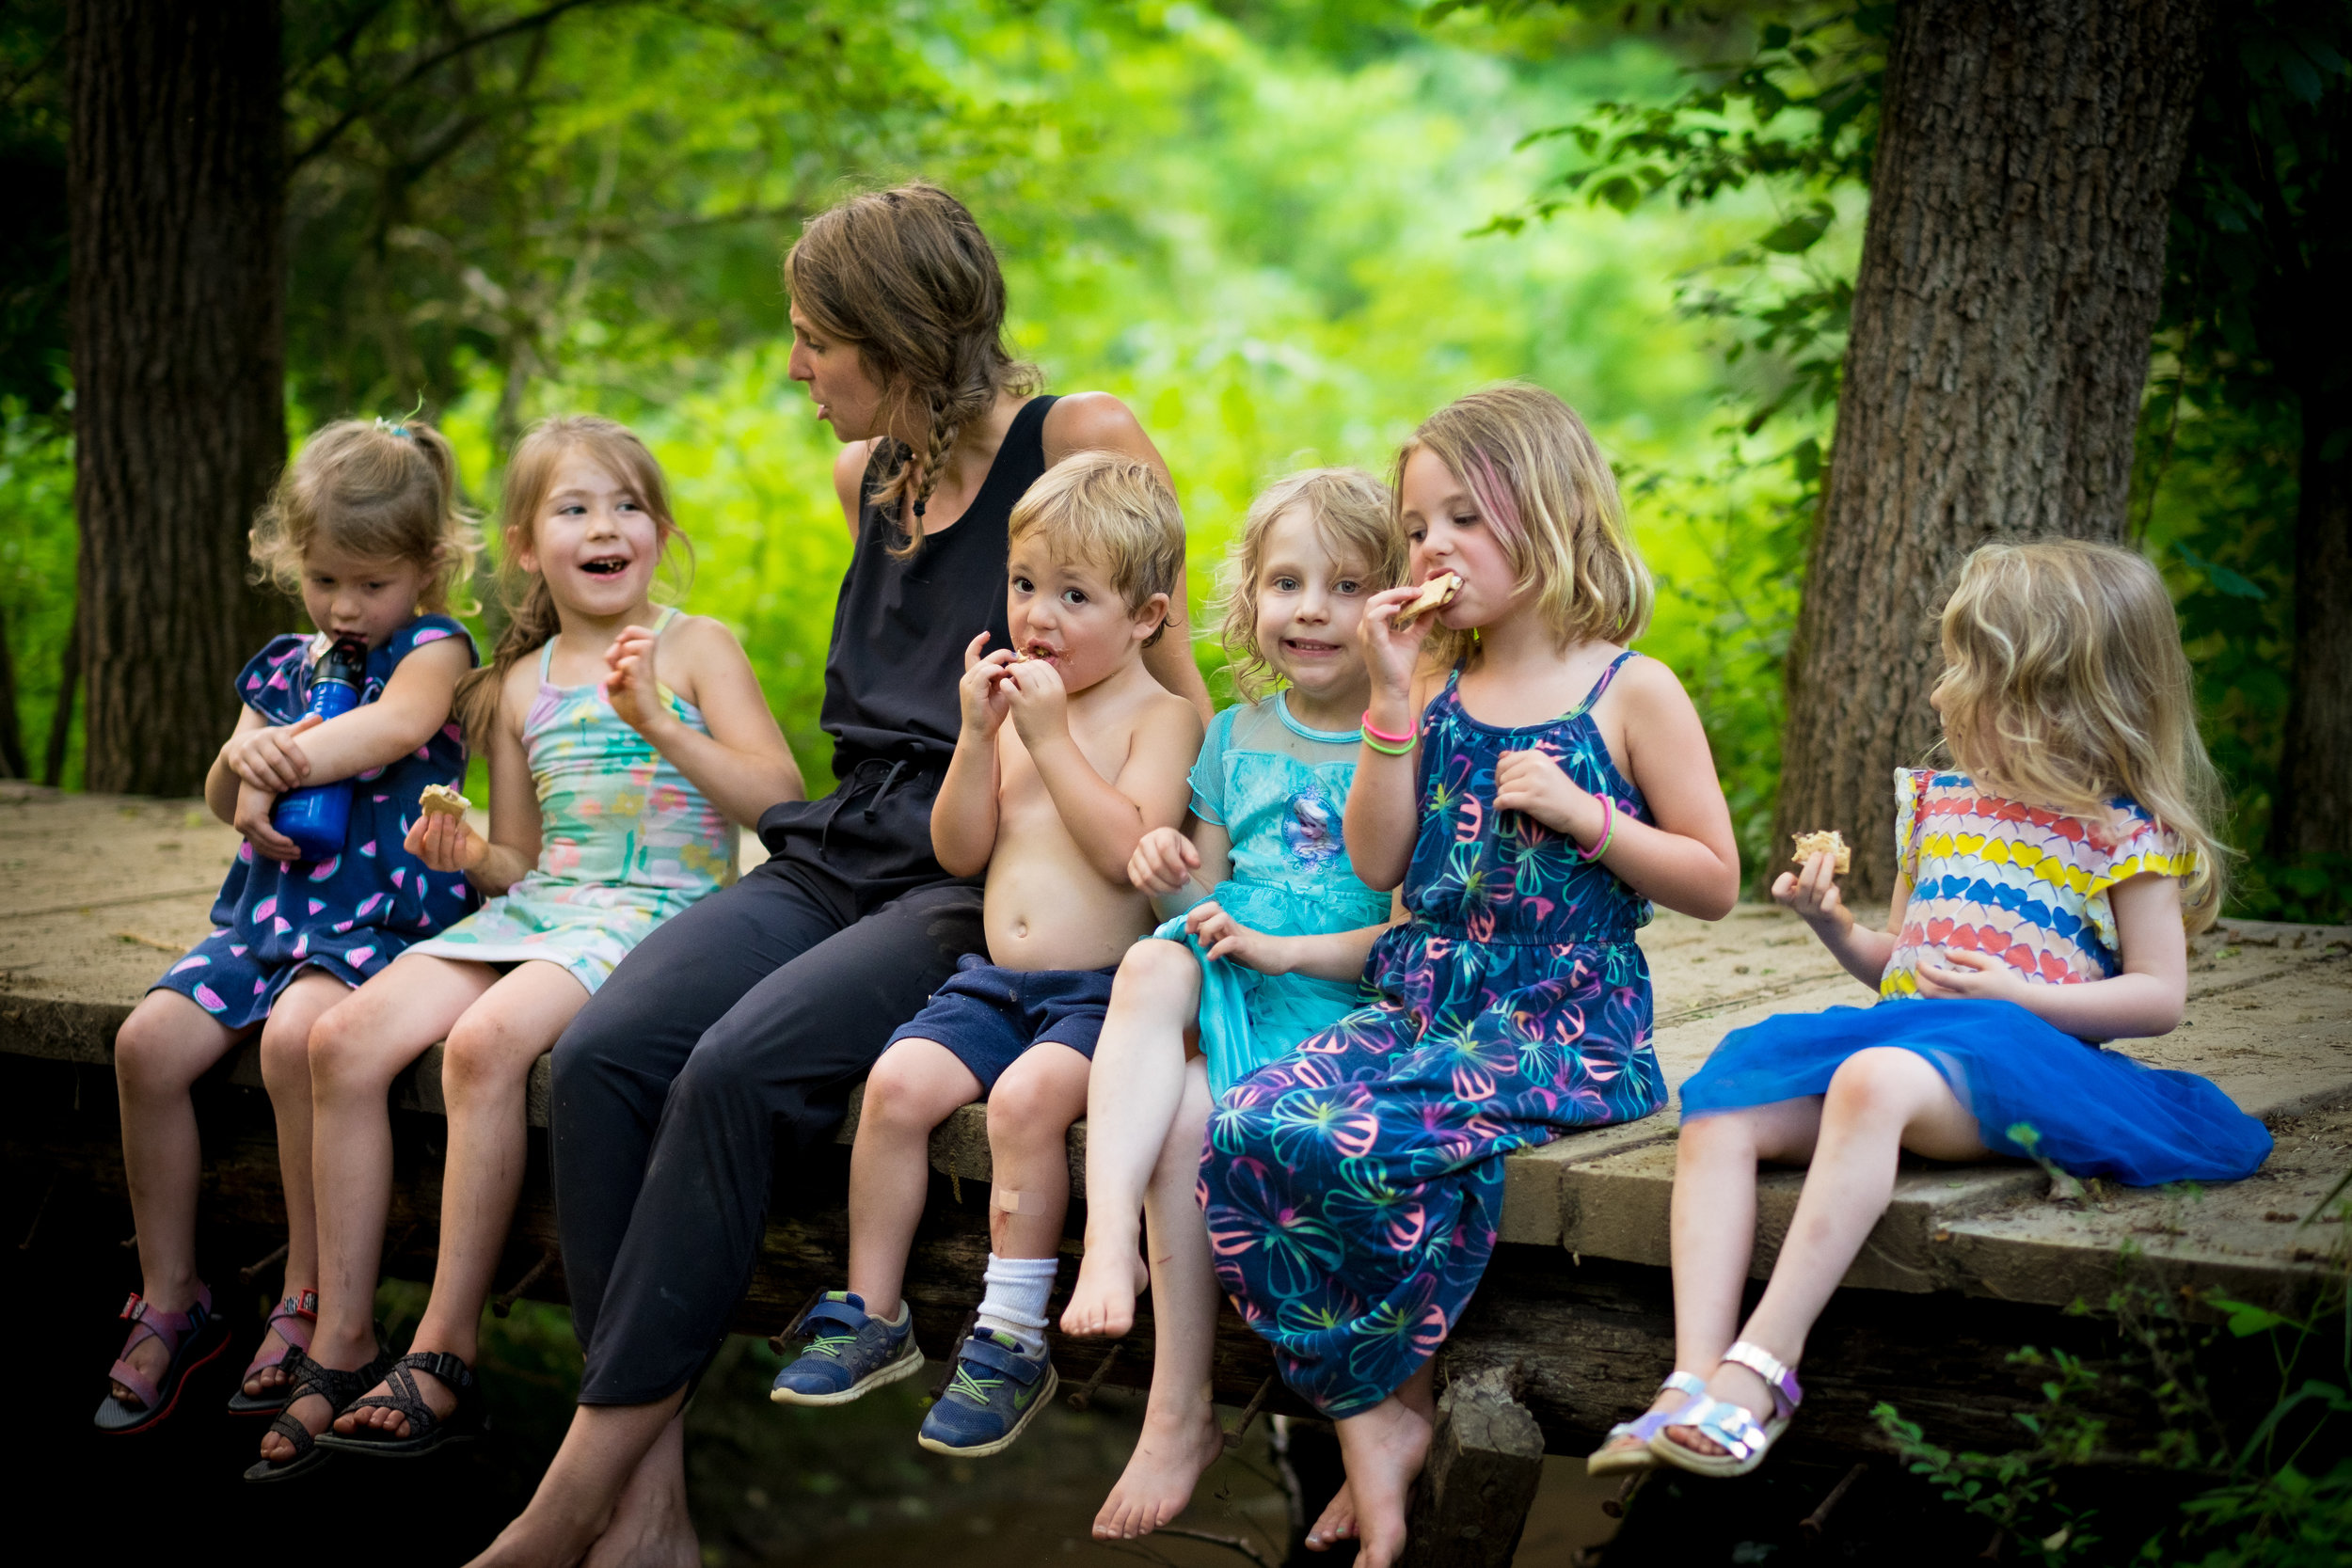 Eating healthy snacks and sharing stories builds wonder and strength. (Photo by David Johnson)